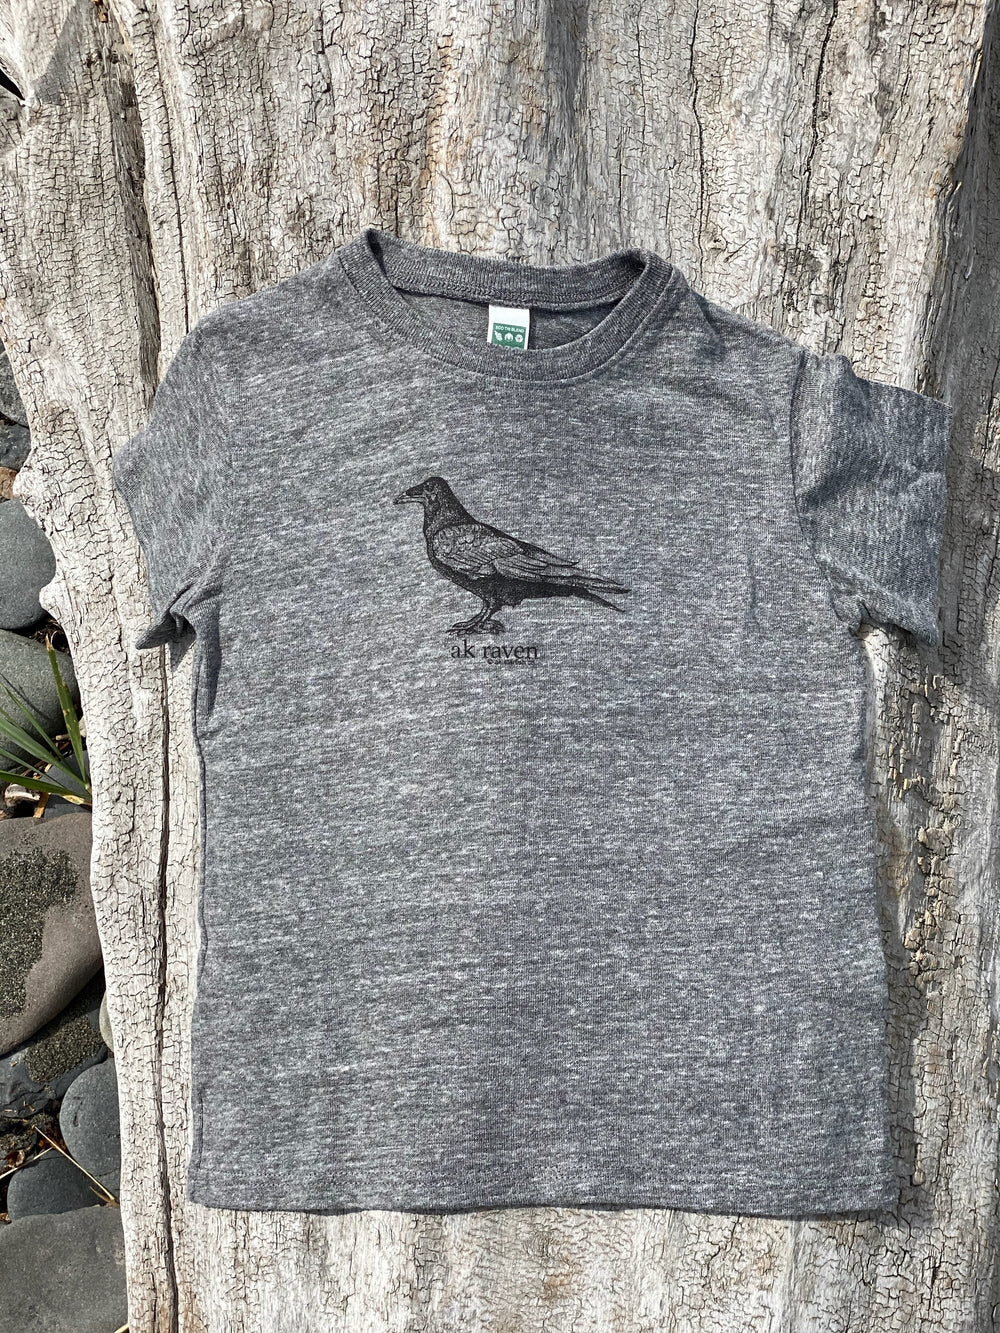 Storm AK Raven Triblend Short Sleeved Tee $25.00